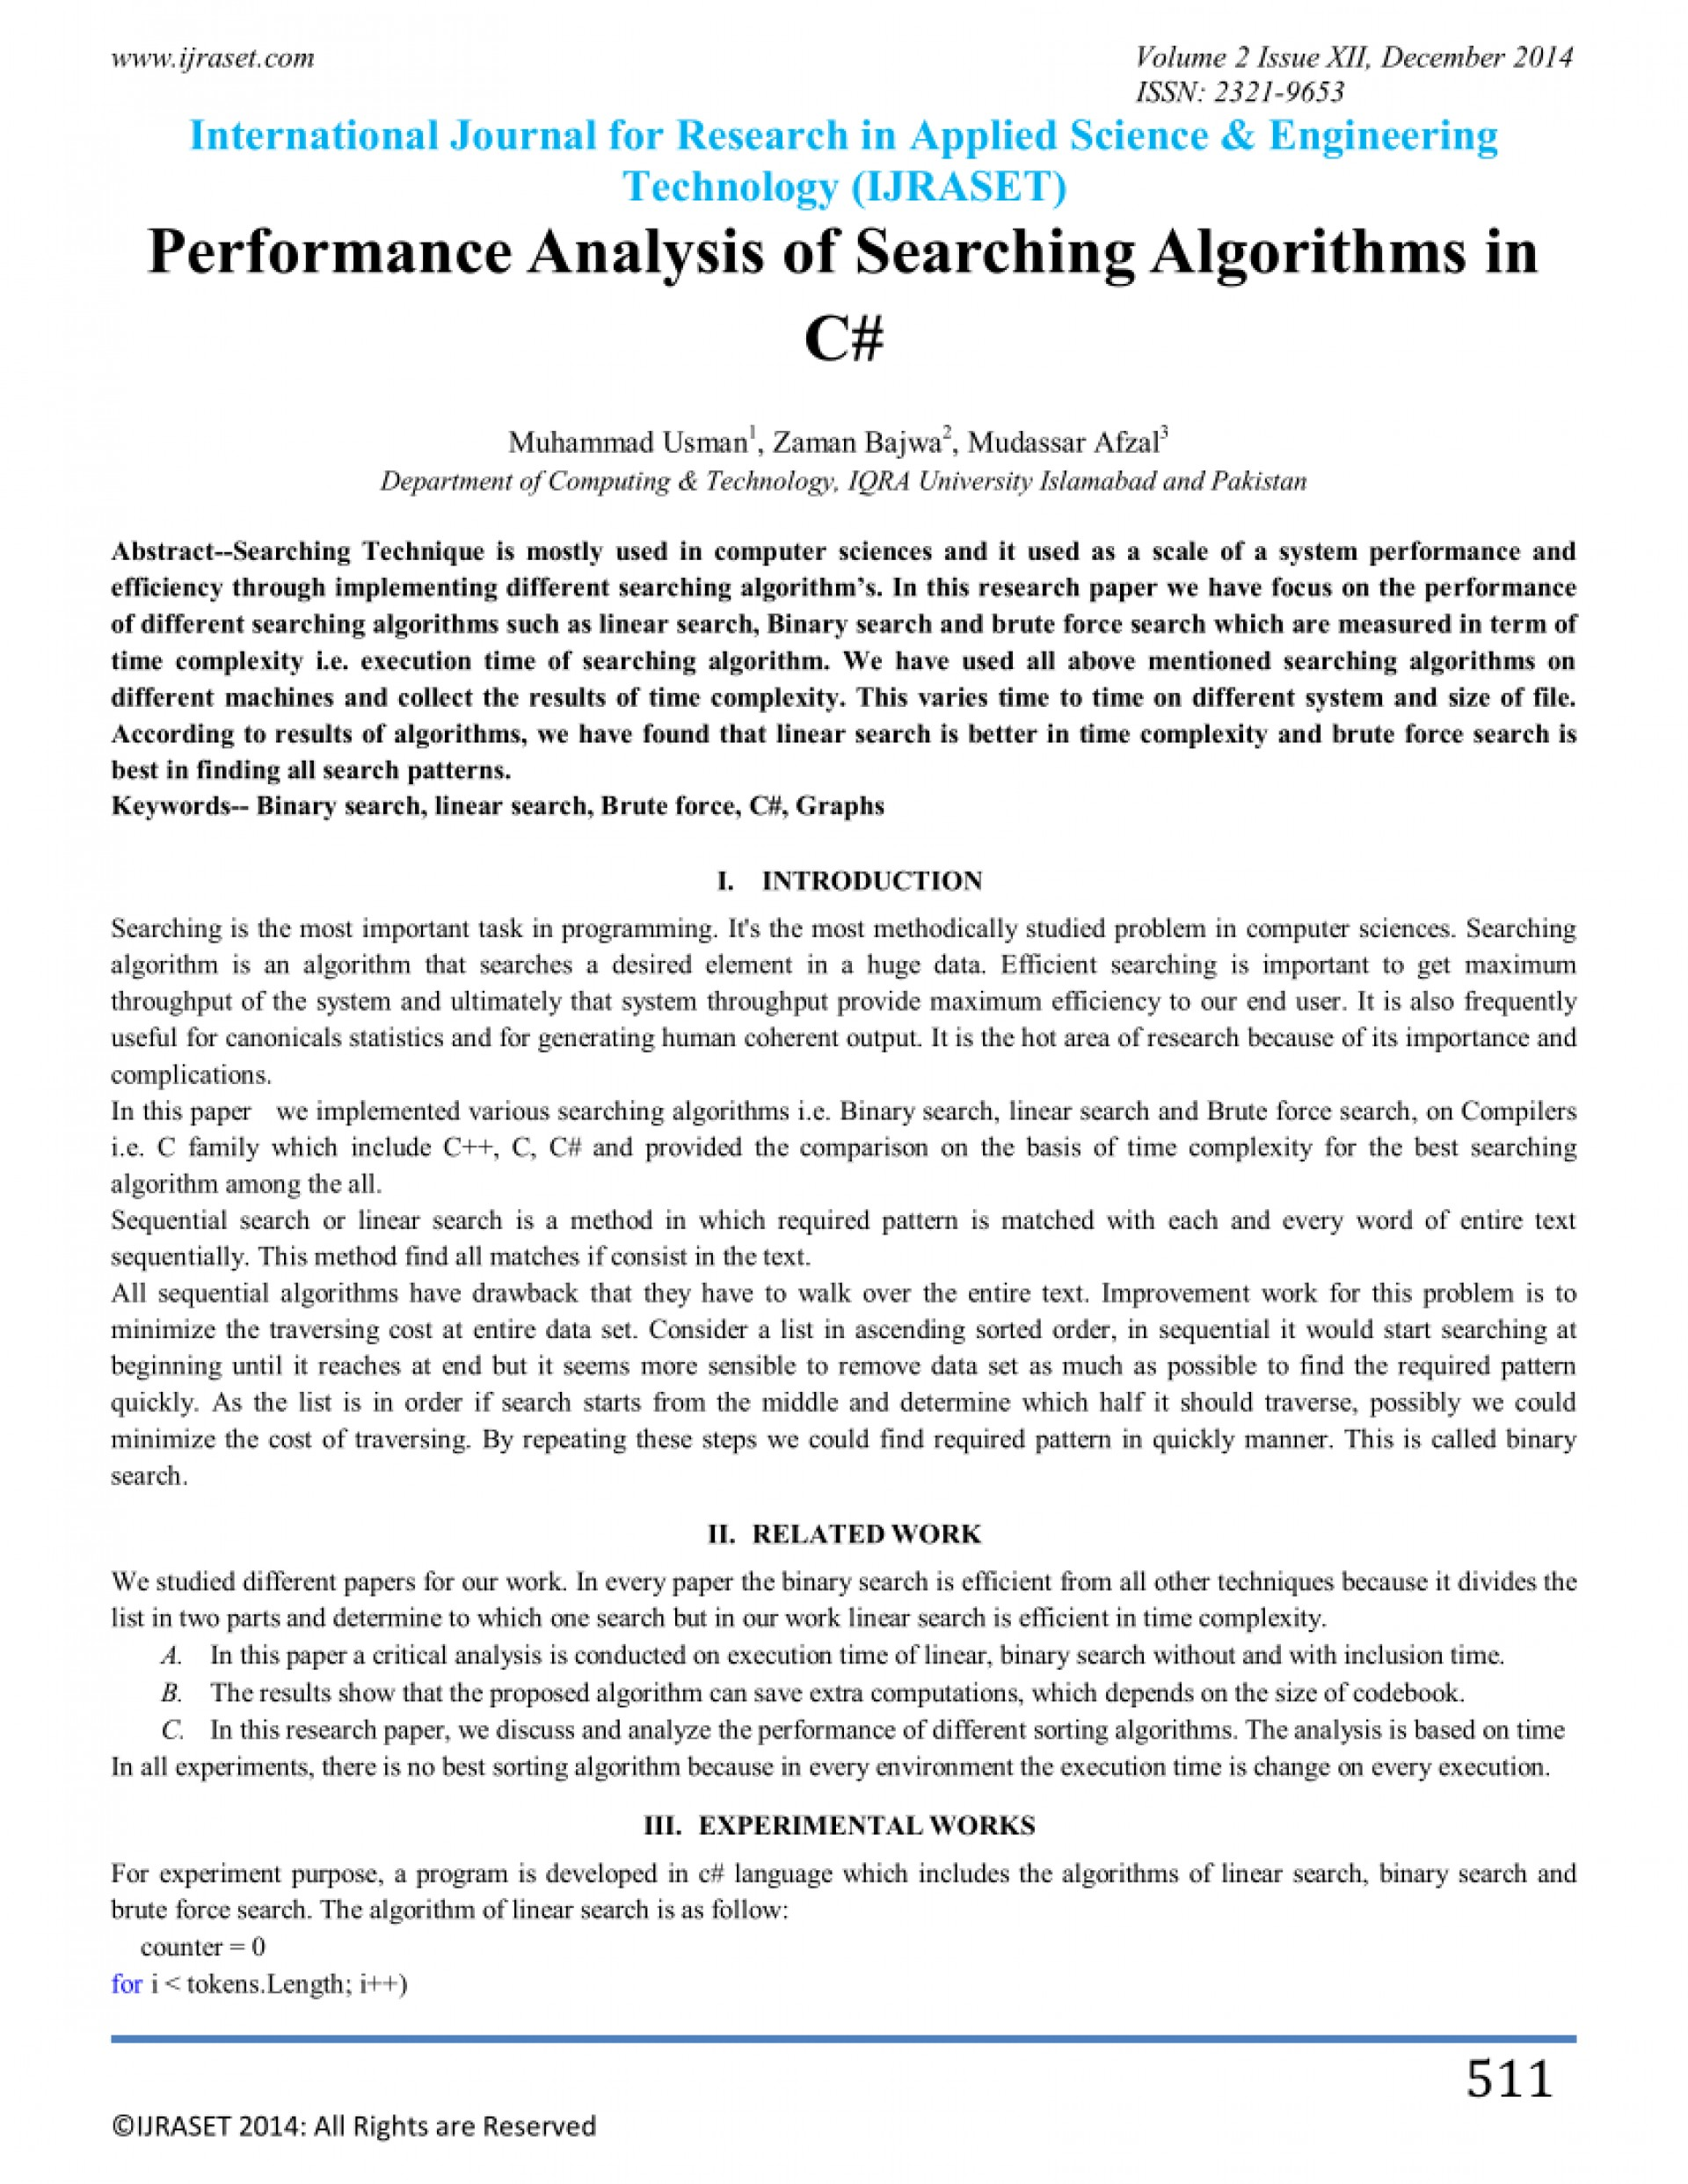 002 Research Paper Binary Search Algorithm Papers Frightening 1920